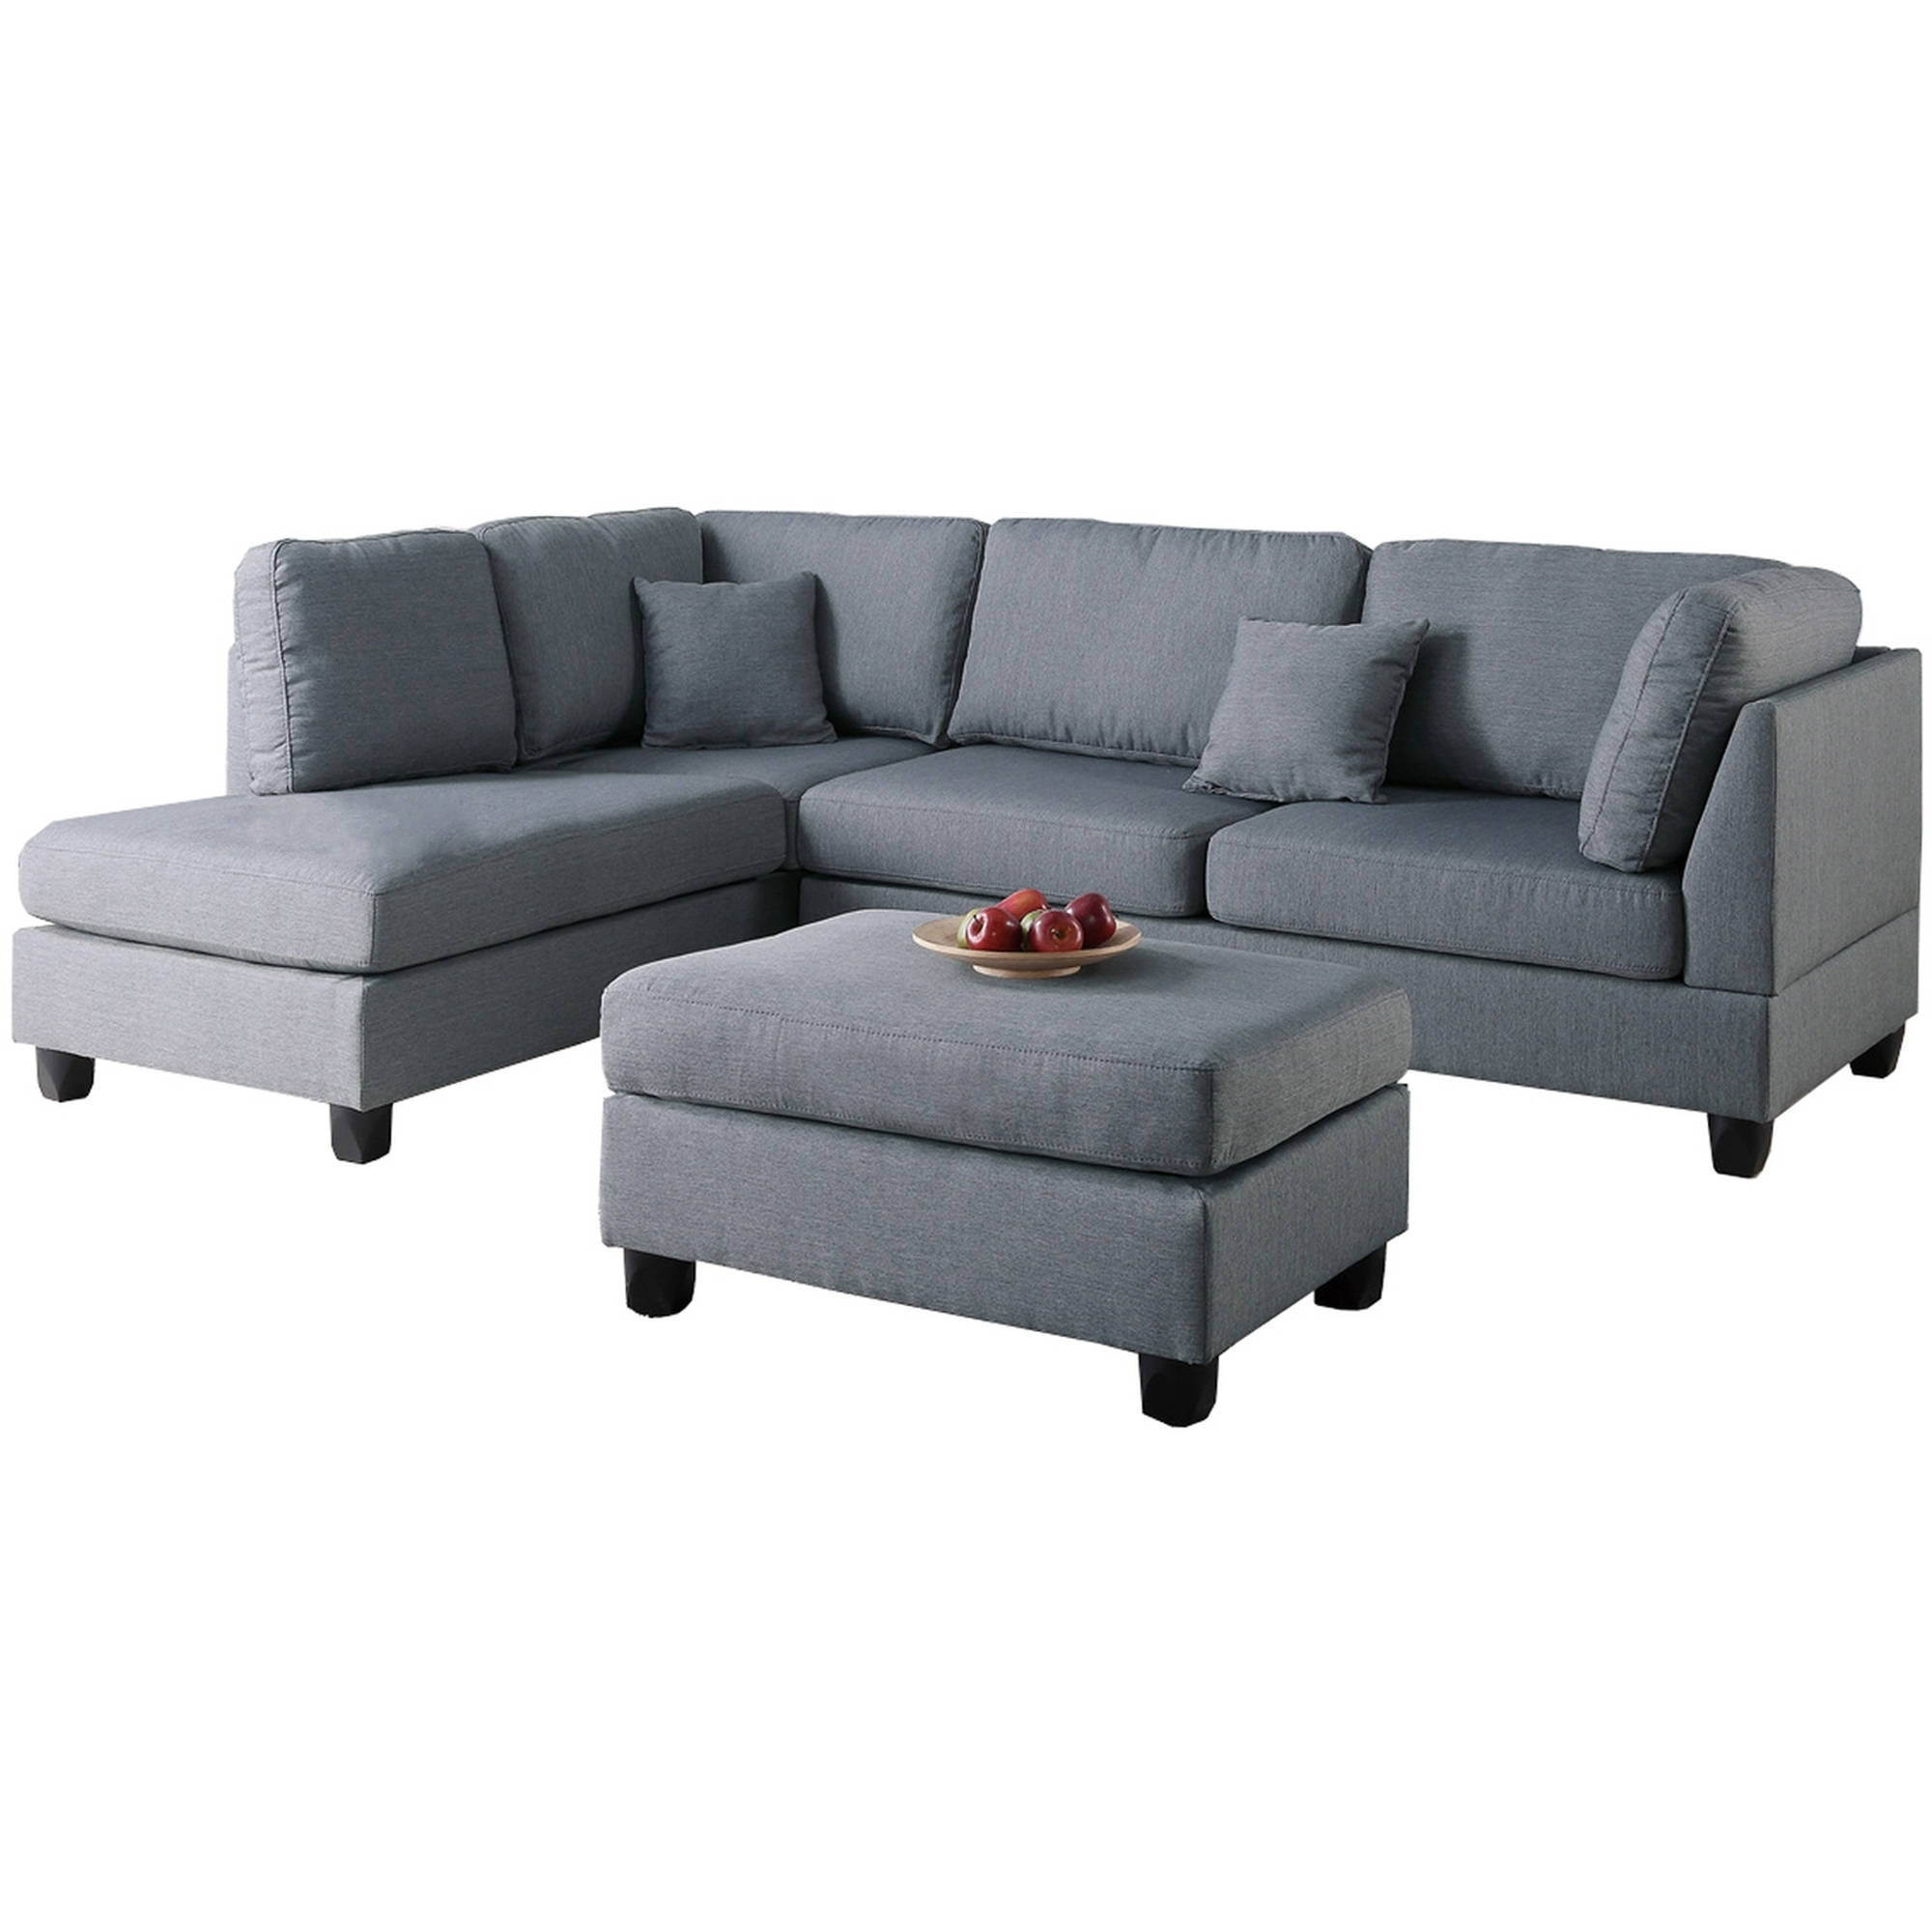 Living Room Furniture With Regard To Newest Sectional Sofas At Walmart (View 14 of 15)